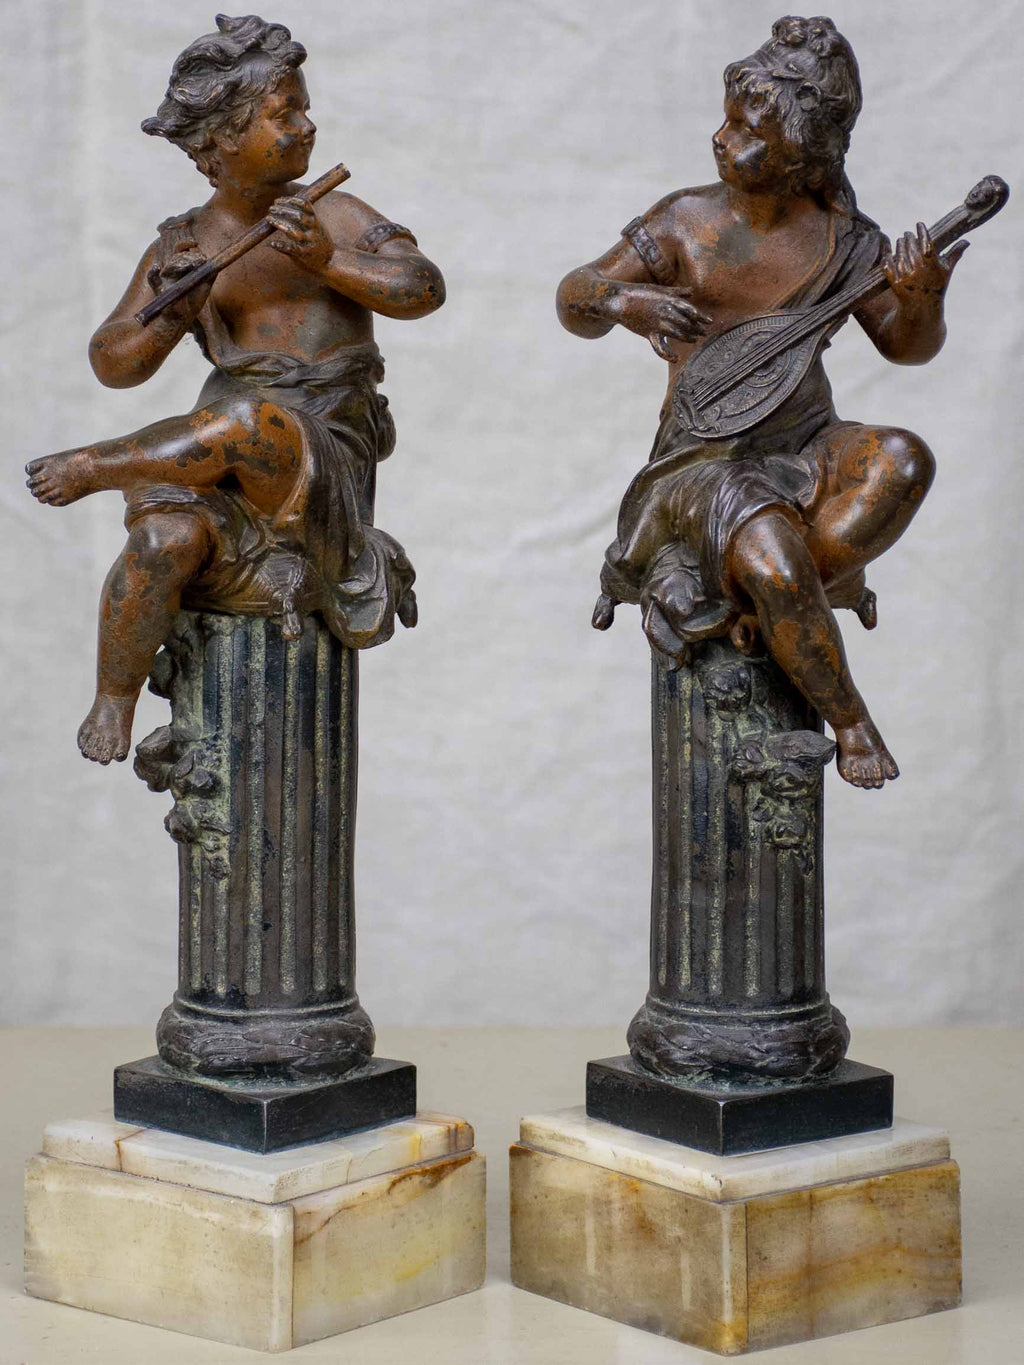 Antique French statues of angels playing music